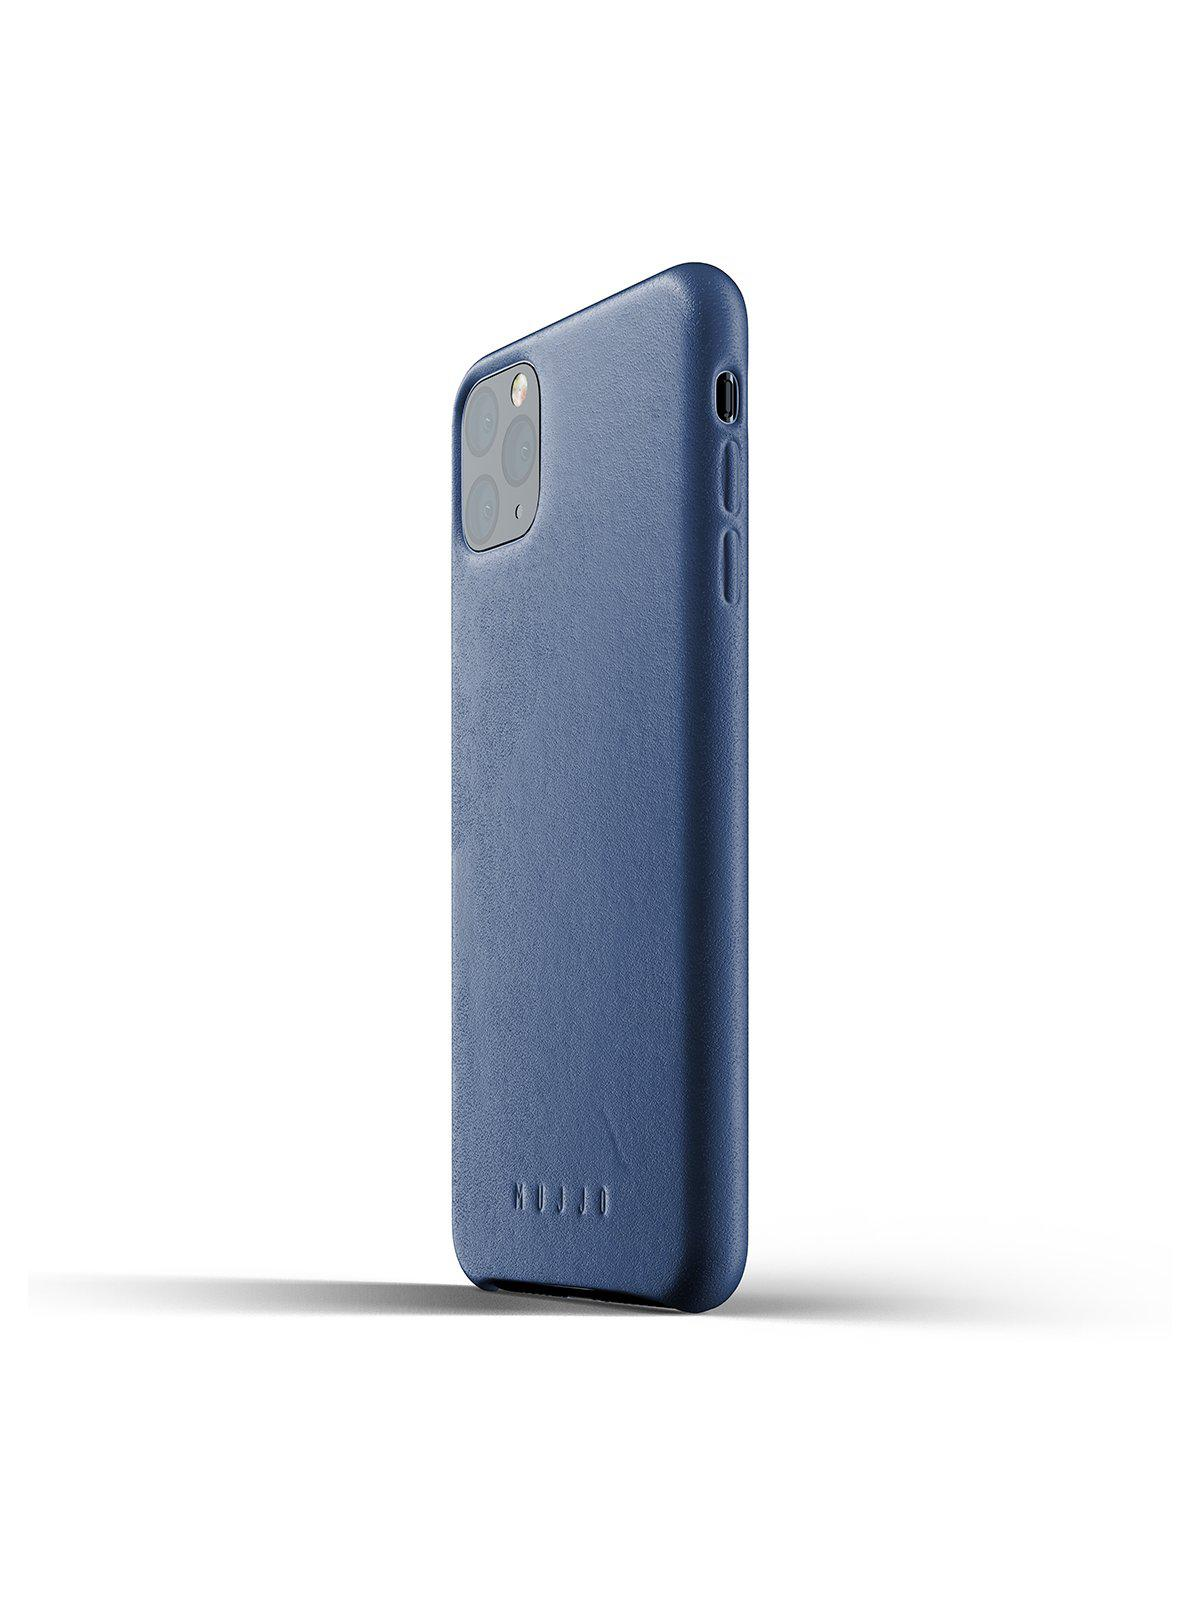 Mujjo Full Leather Case for iPhone 11 Pro Max Monaco Blue - MORE by Morello Indonesia